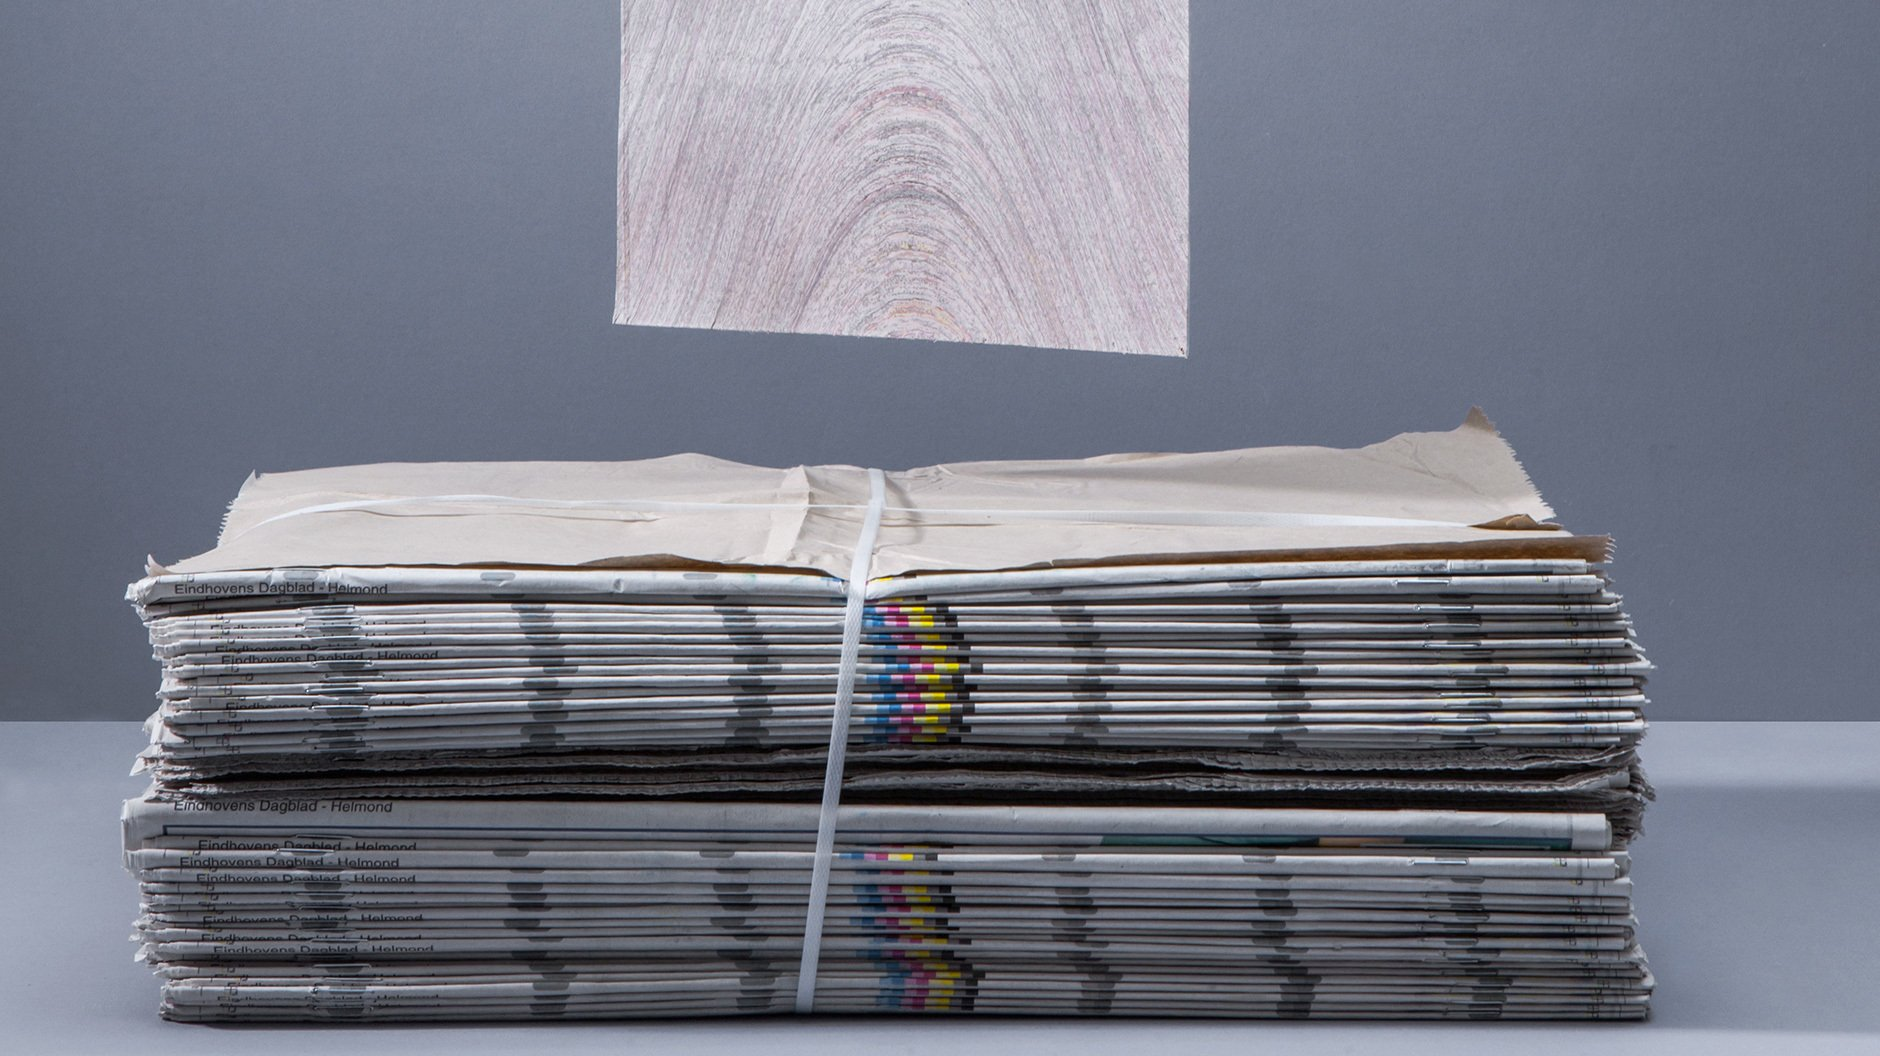 Designer/Hersteller: Vij5, Newspaper Wood